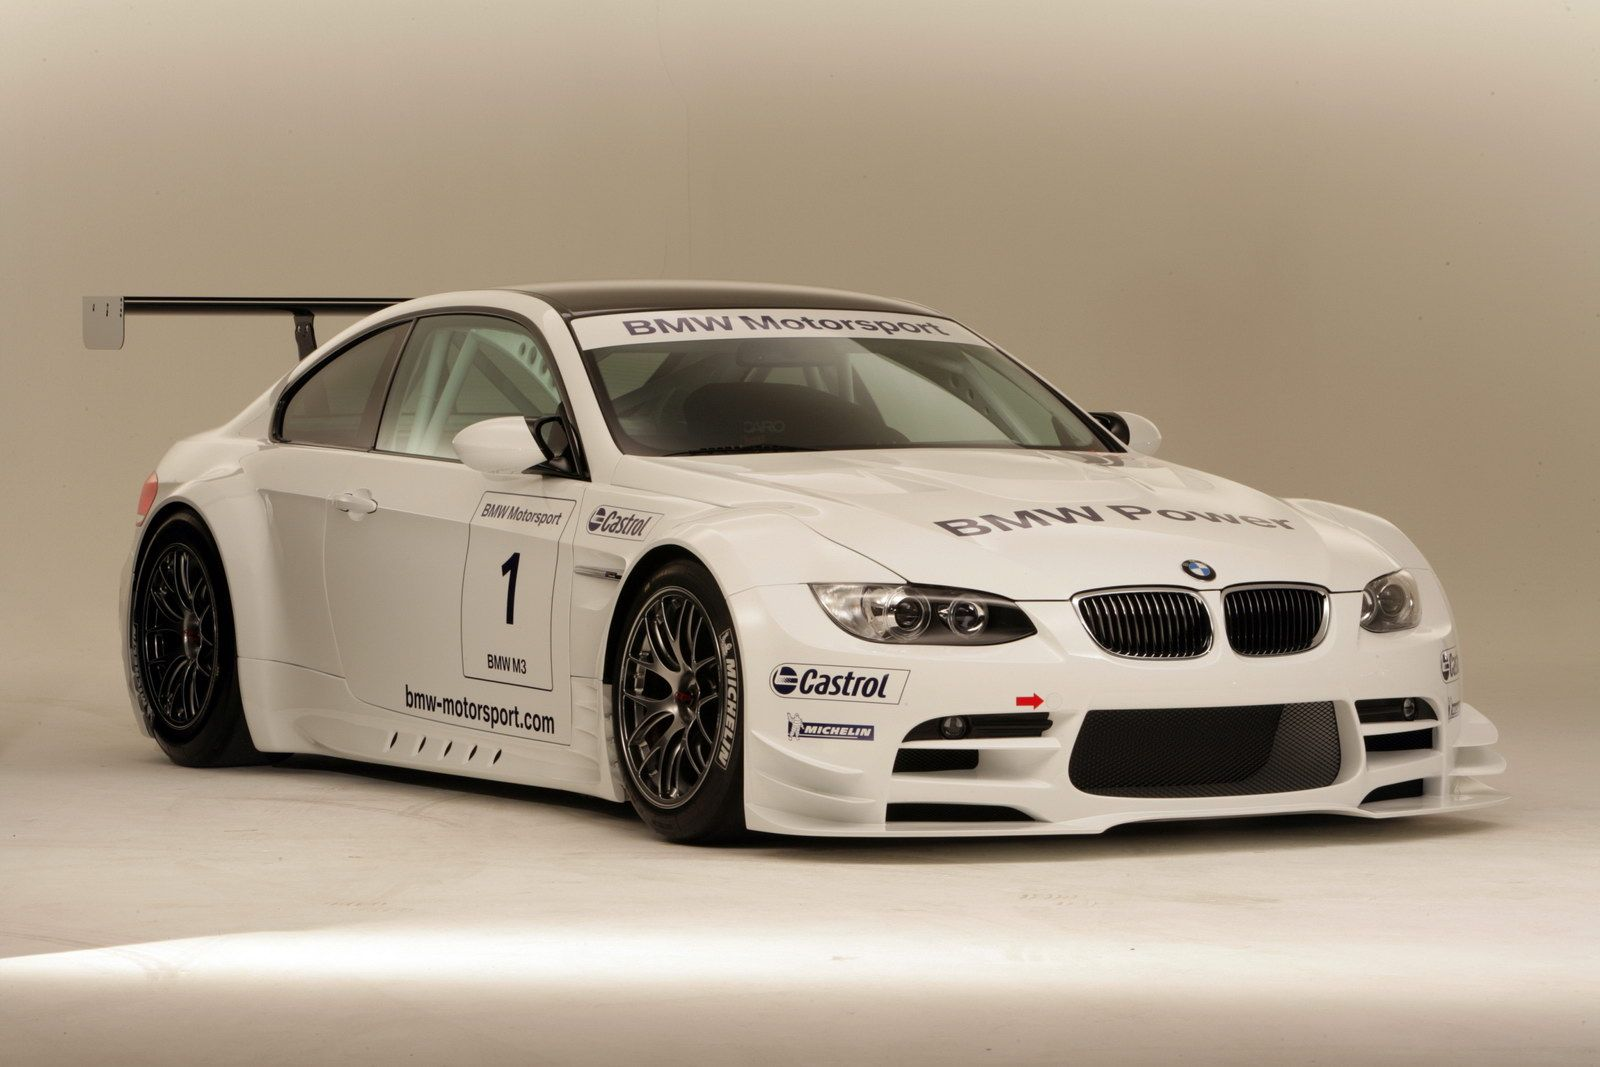 M3 Pics | Bmw M3 Car Specifications Brand Bmw Model Bmw M3 2dr Coupe  Edition 4